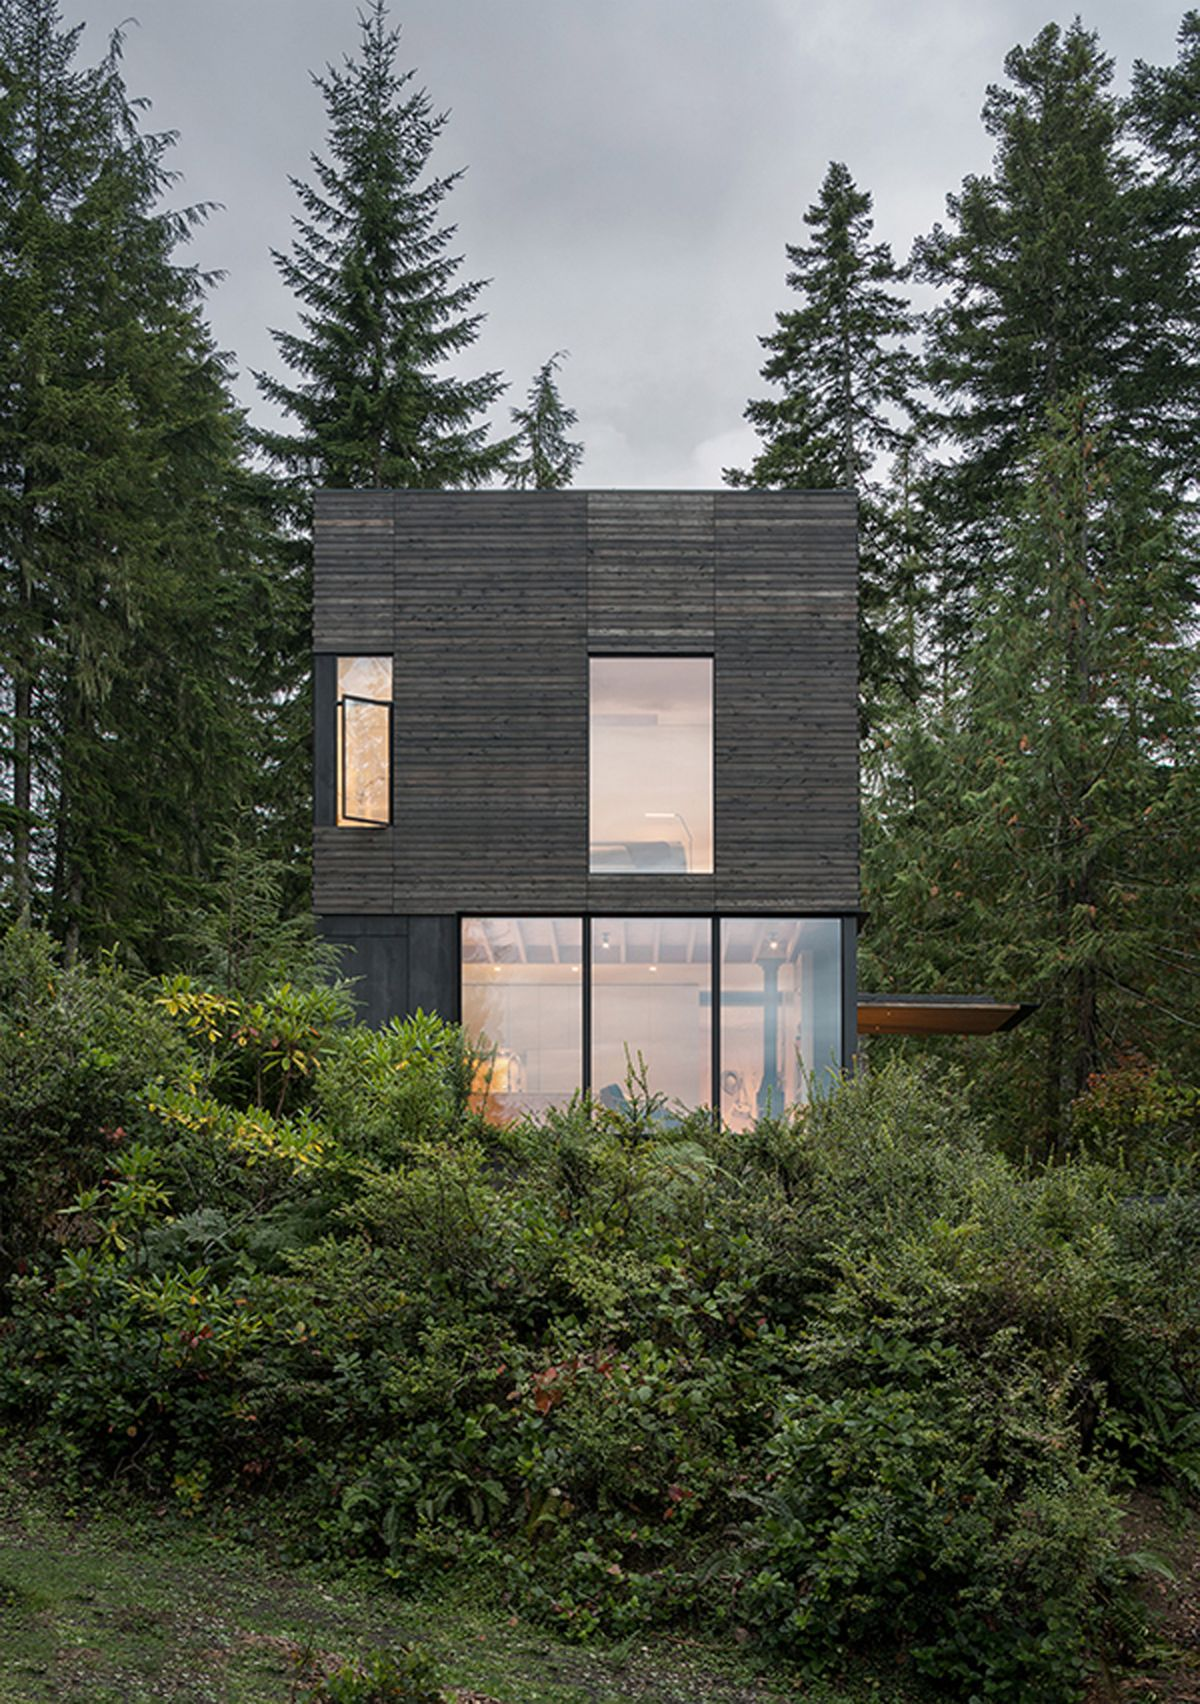 Dense vegetation and trees surround the cabin on all sides, creating a green shield around it